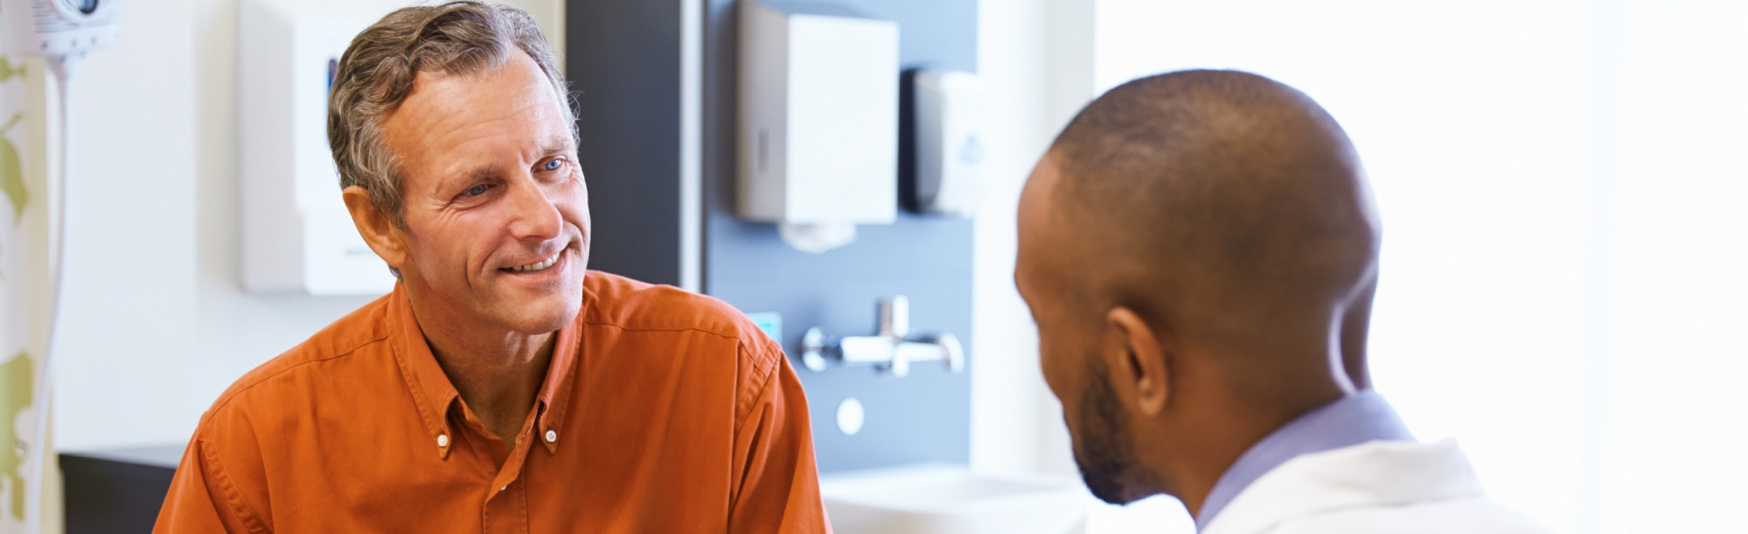 LP_Header-1748x534-african-american-doctor-white-male-patient-consultation-office-conversation-similing